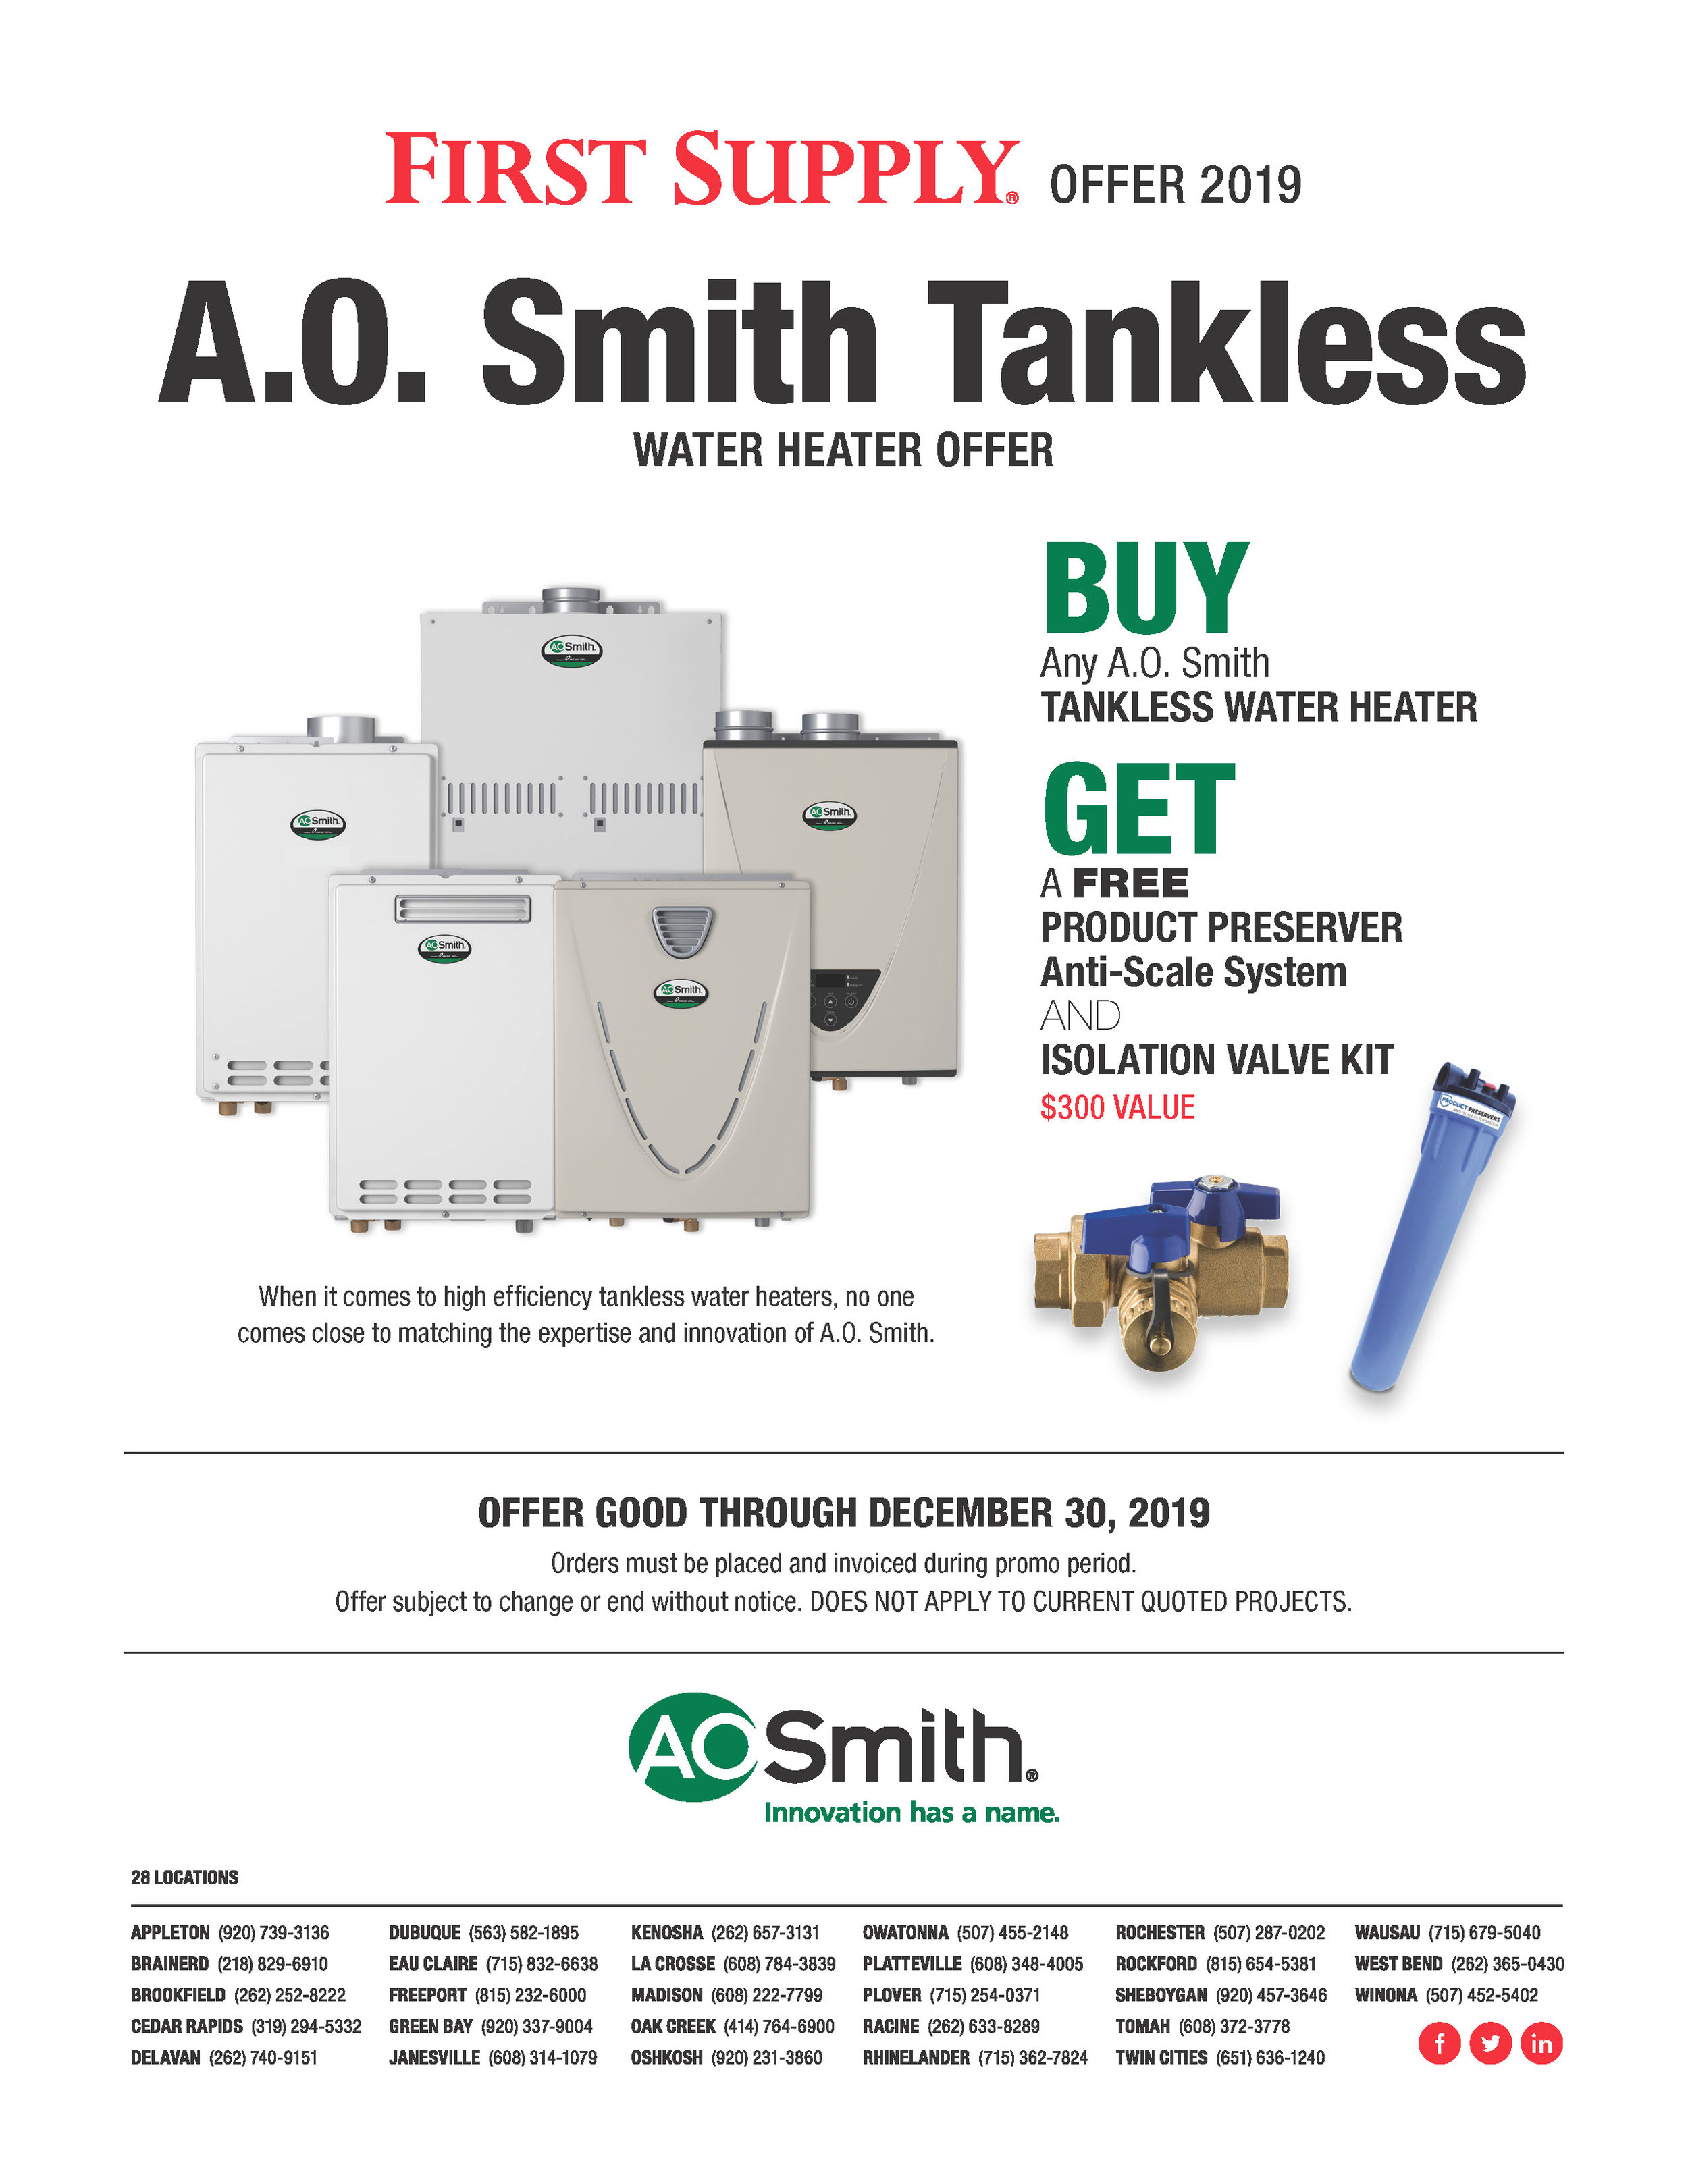 FS-AOS-Tankless-Offer-2019.jpg